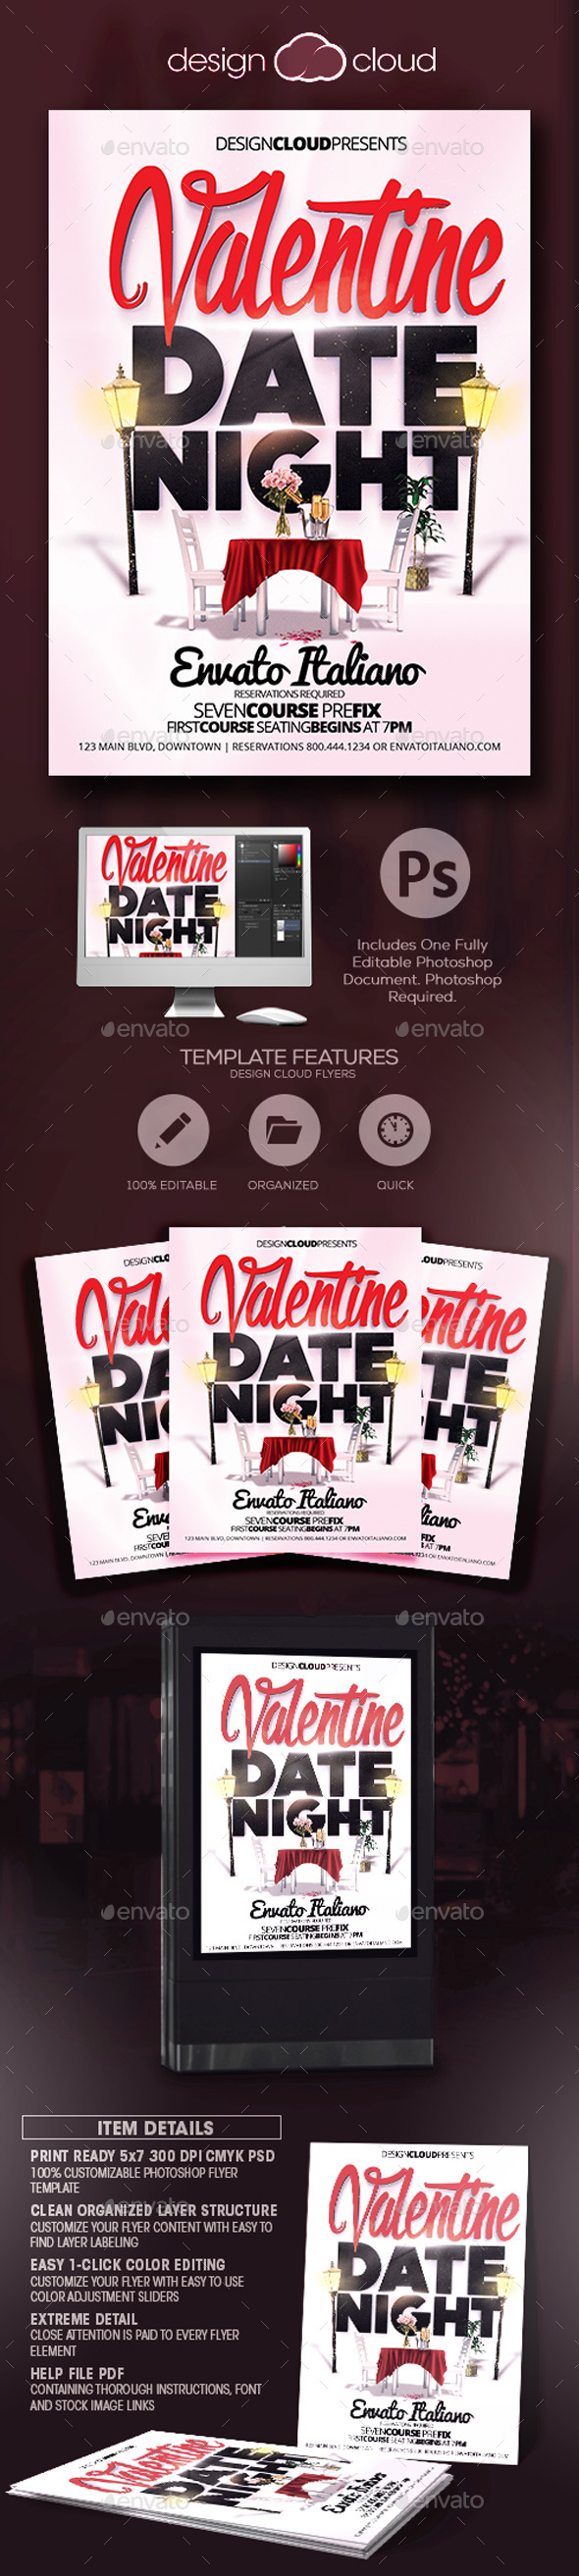 Valentine Date Night Flyer Template - Holidays Events